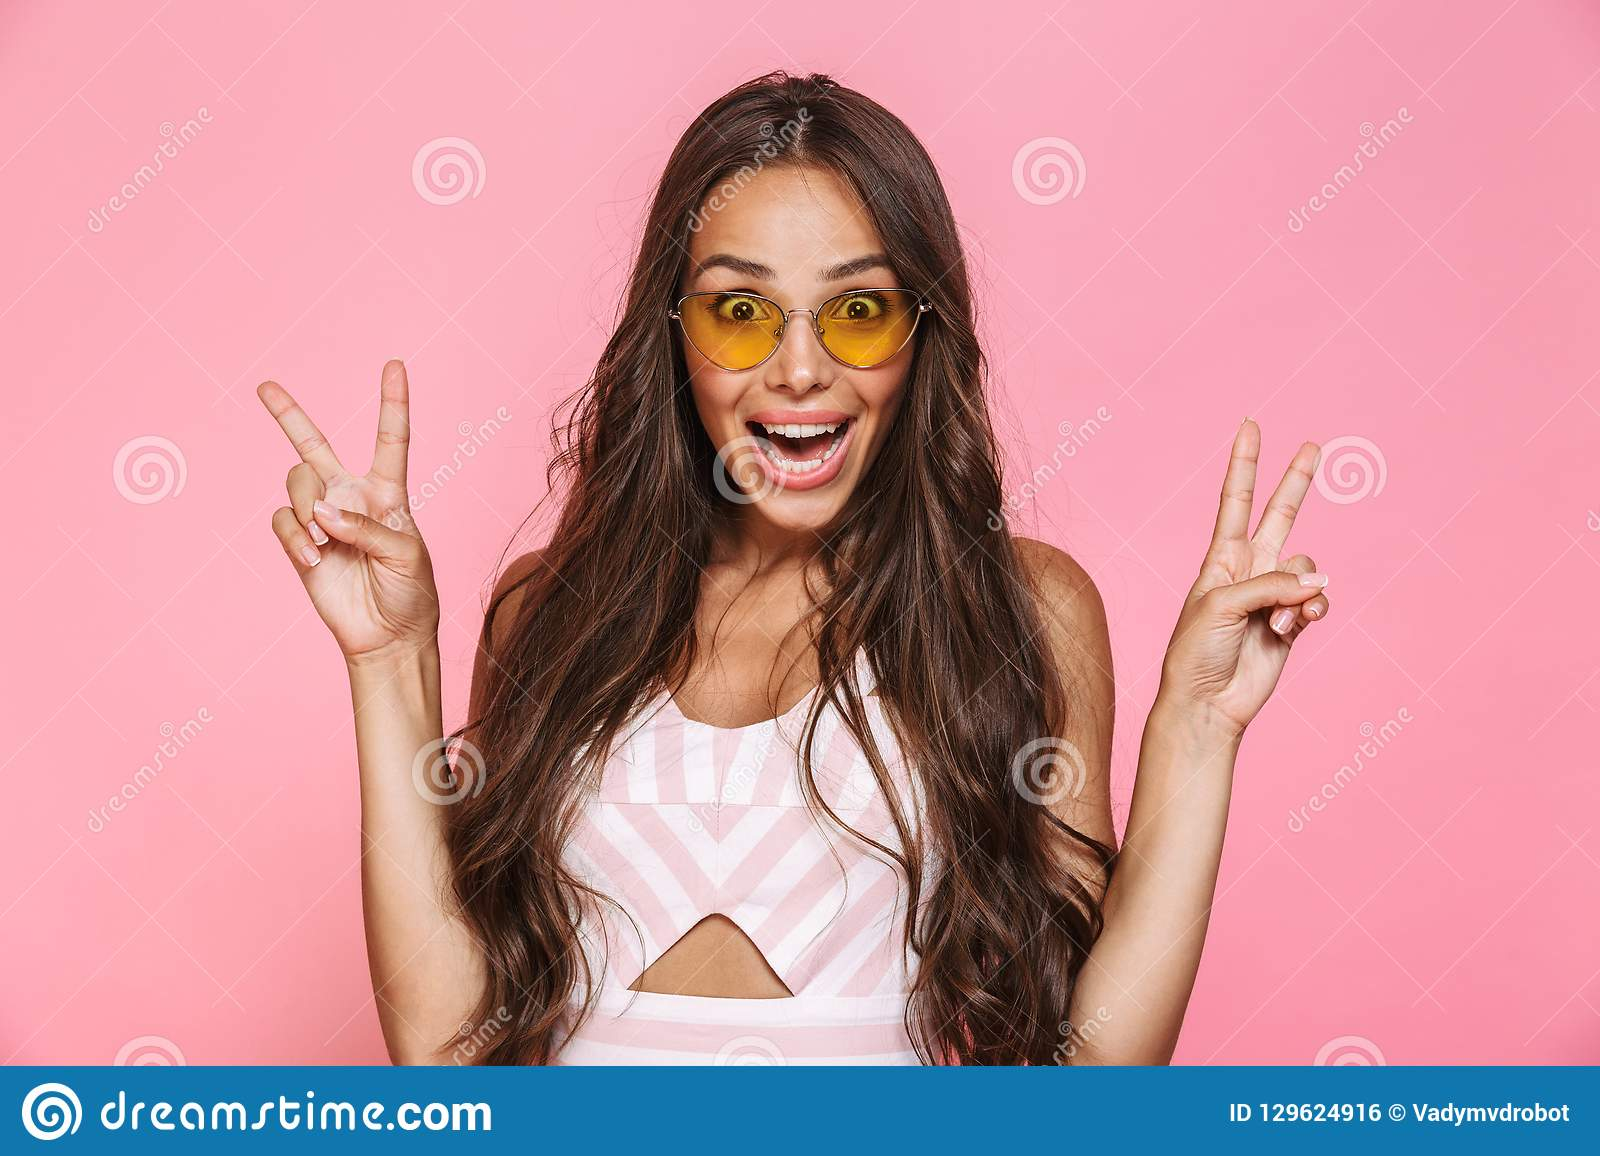 Photo of stylish woman 20s wearing sunglasses rejoicing with surprise, isolated over pink background